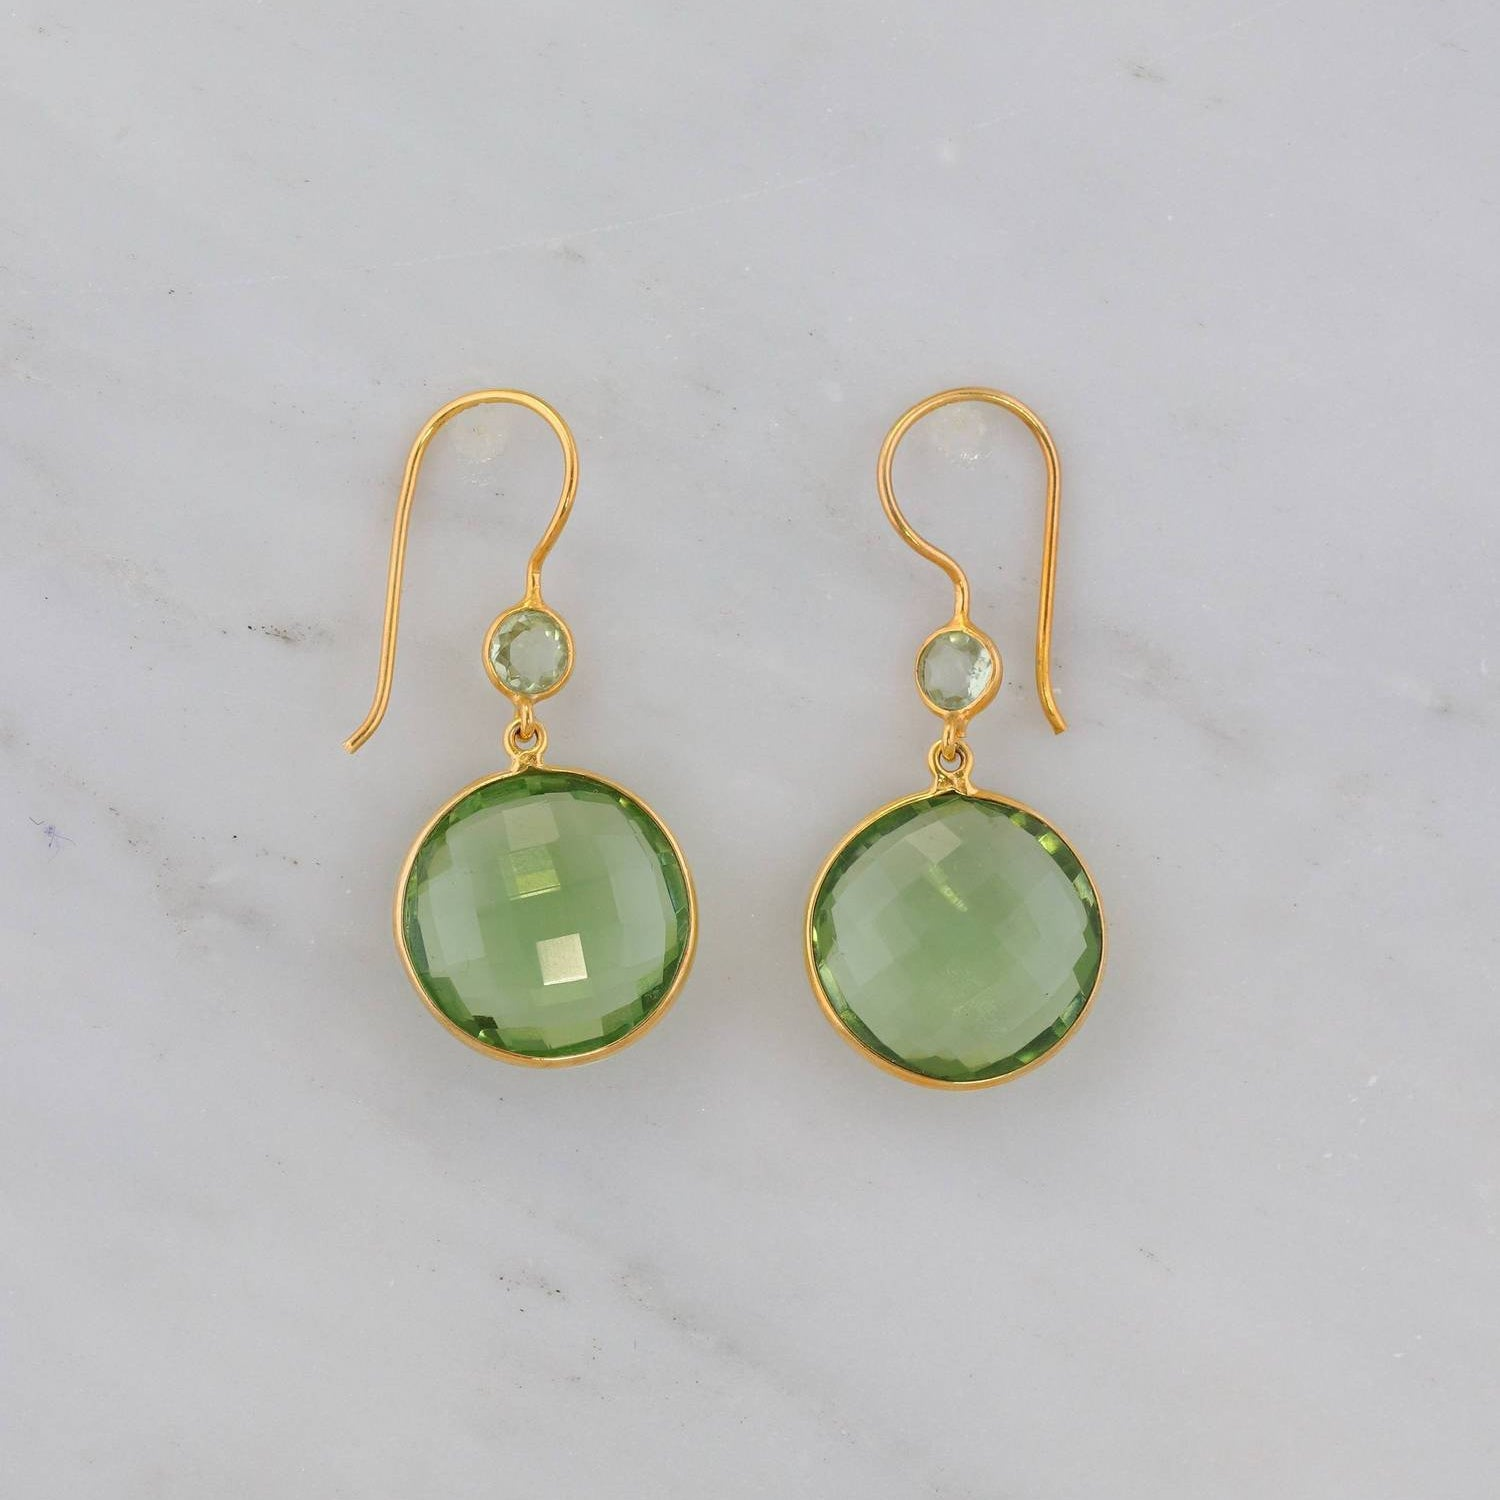 Green Amethyst Earring, Amethyst Earring, Circle Gemstone Earring, Round Bezel Earring, Perfect gift for Christmas, Mama gift, Gold Earring